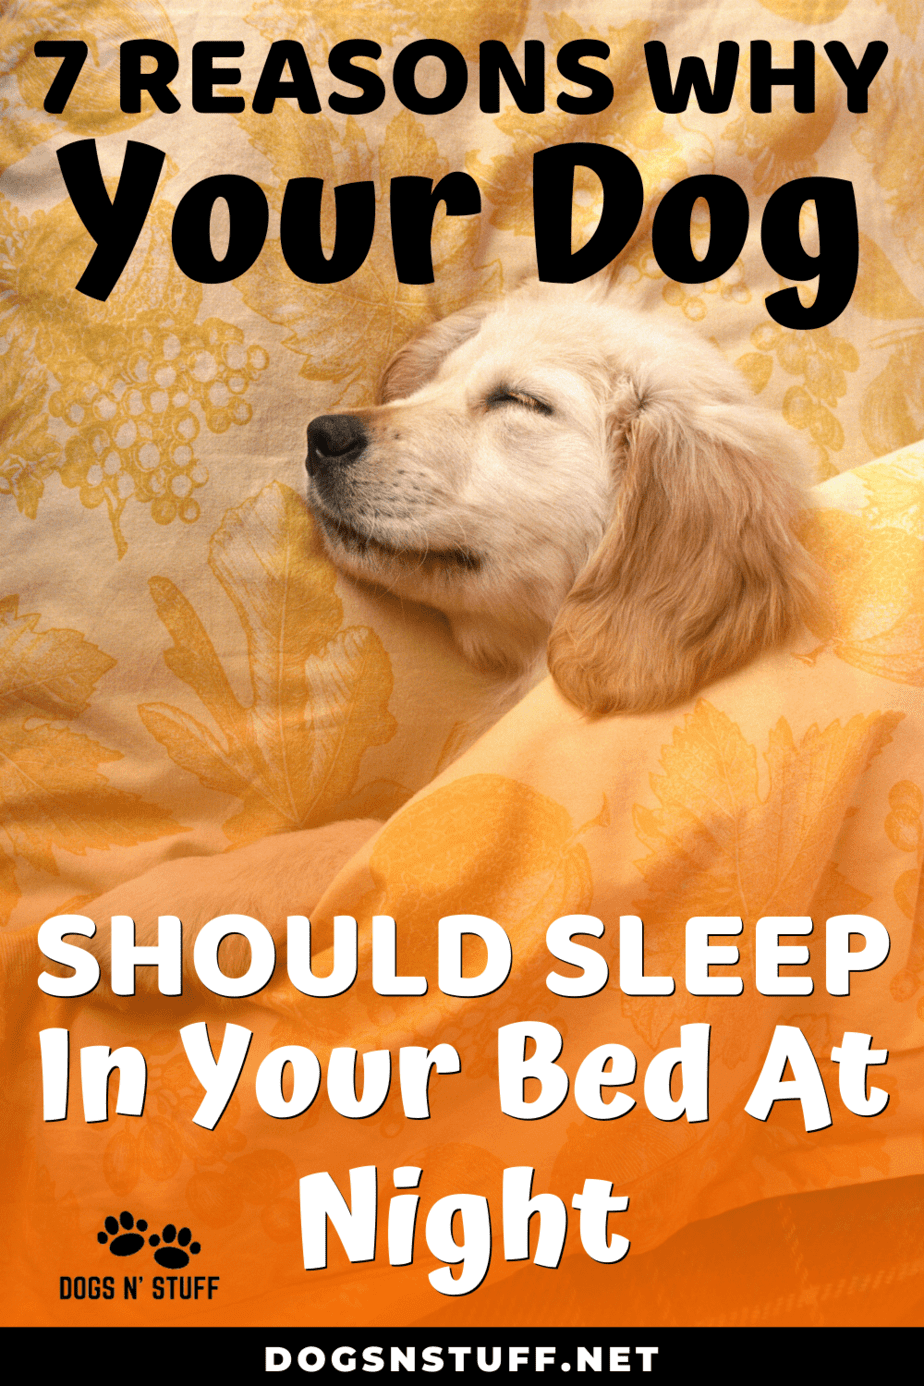 Letting your dog sleep in your bed at night